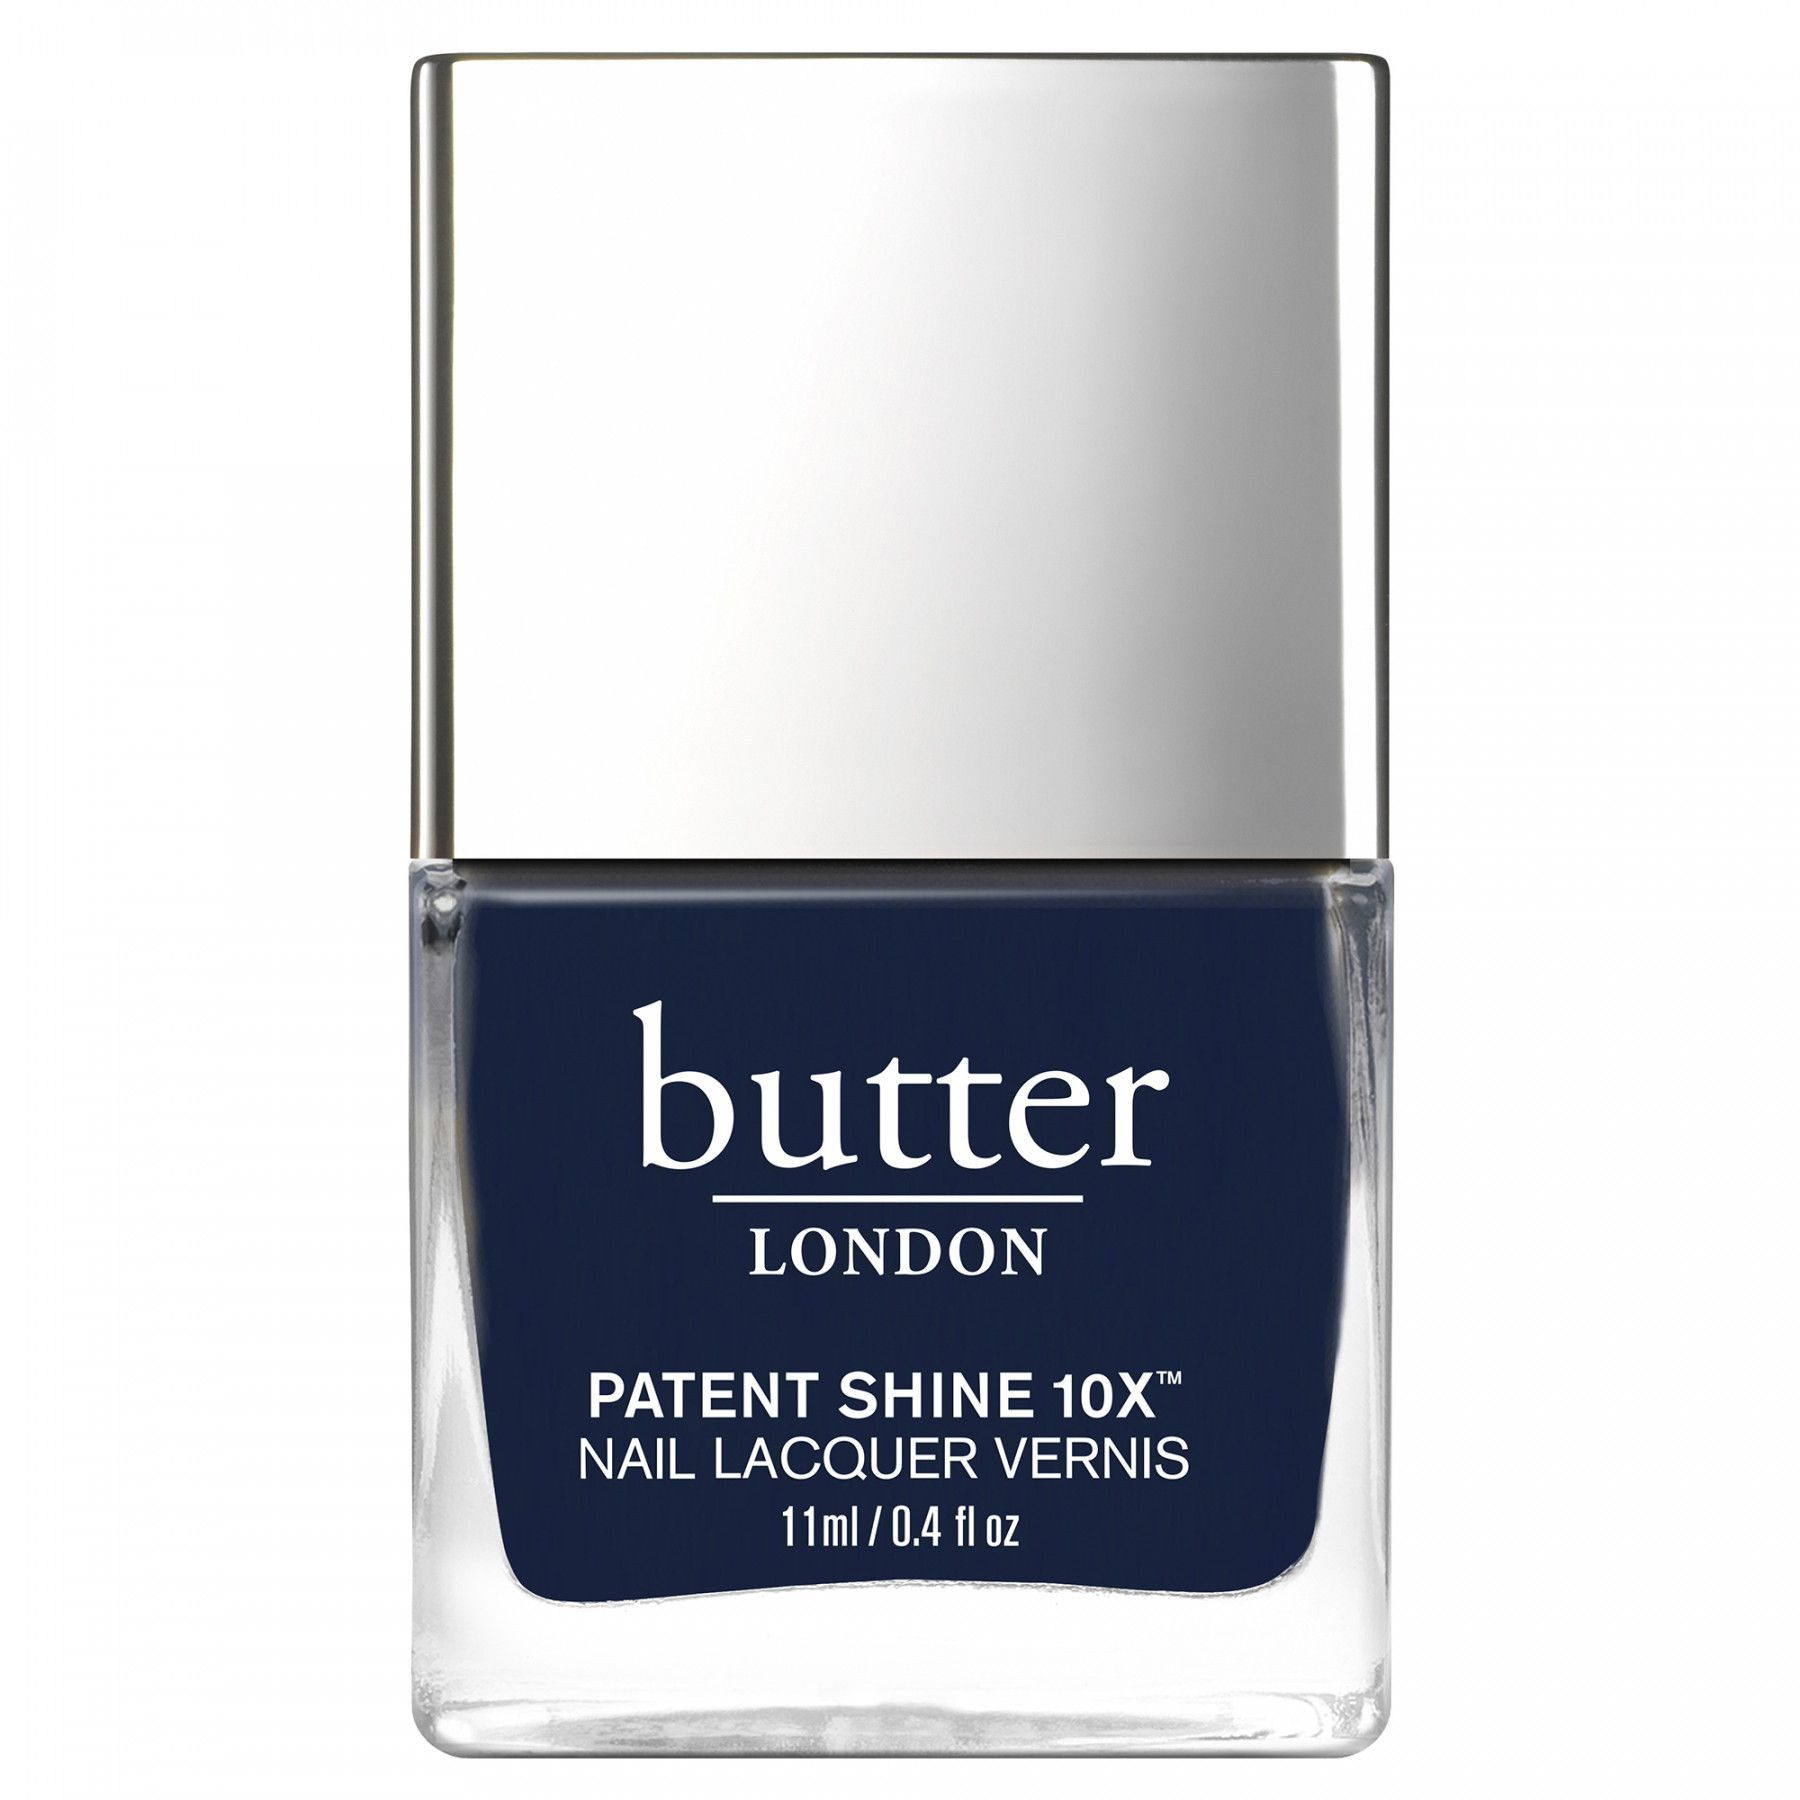 Butter London Patent Shine 10X Nail Lacquer in Brolly